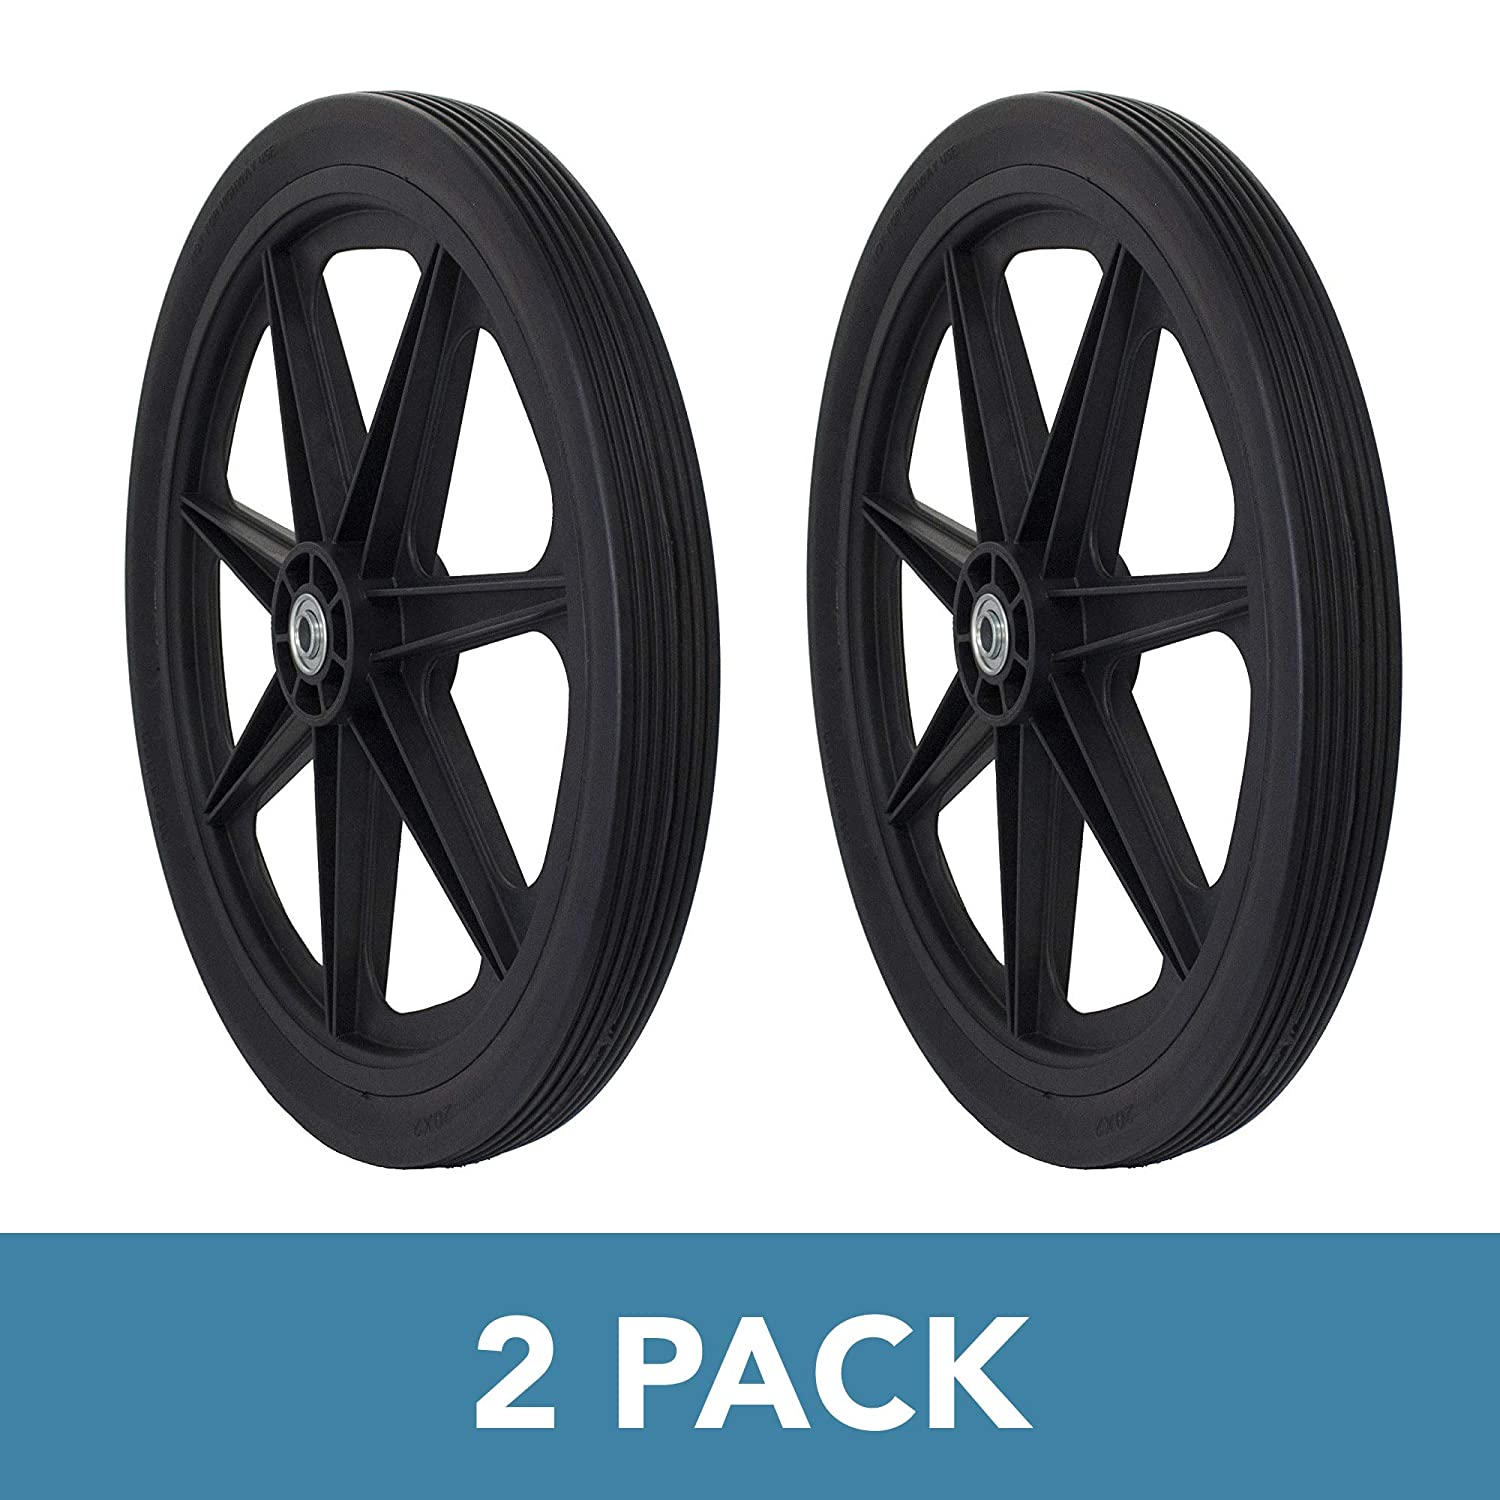 """Marathon Industries 92008 Flat Free 2 Pack Marathon 20"""" Spoked Tire Assembly Replacement for Rubbermaid, Black"""